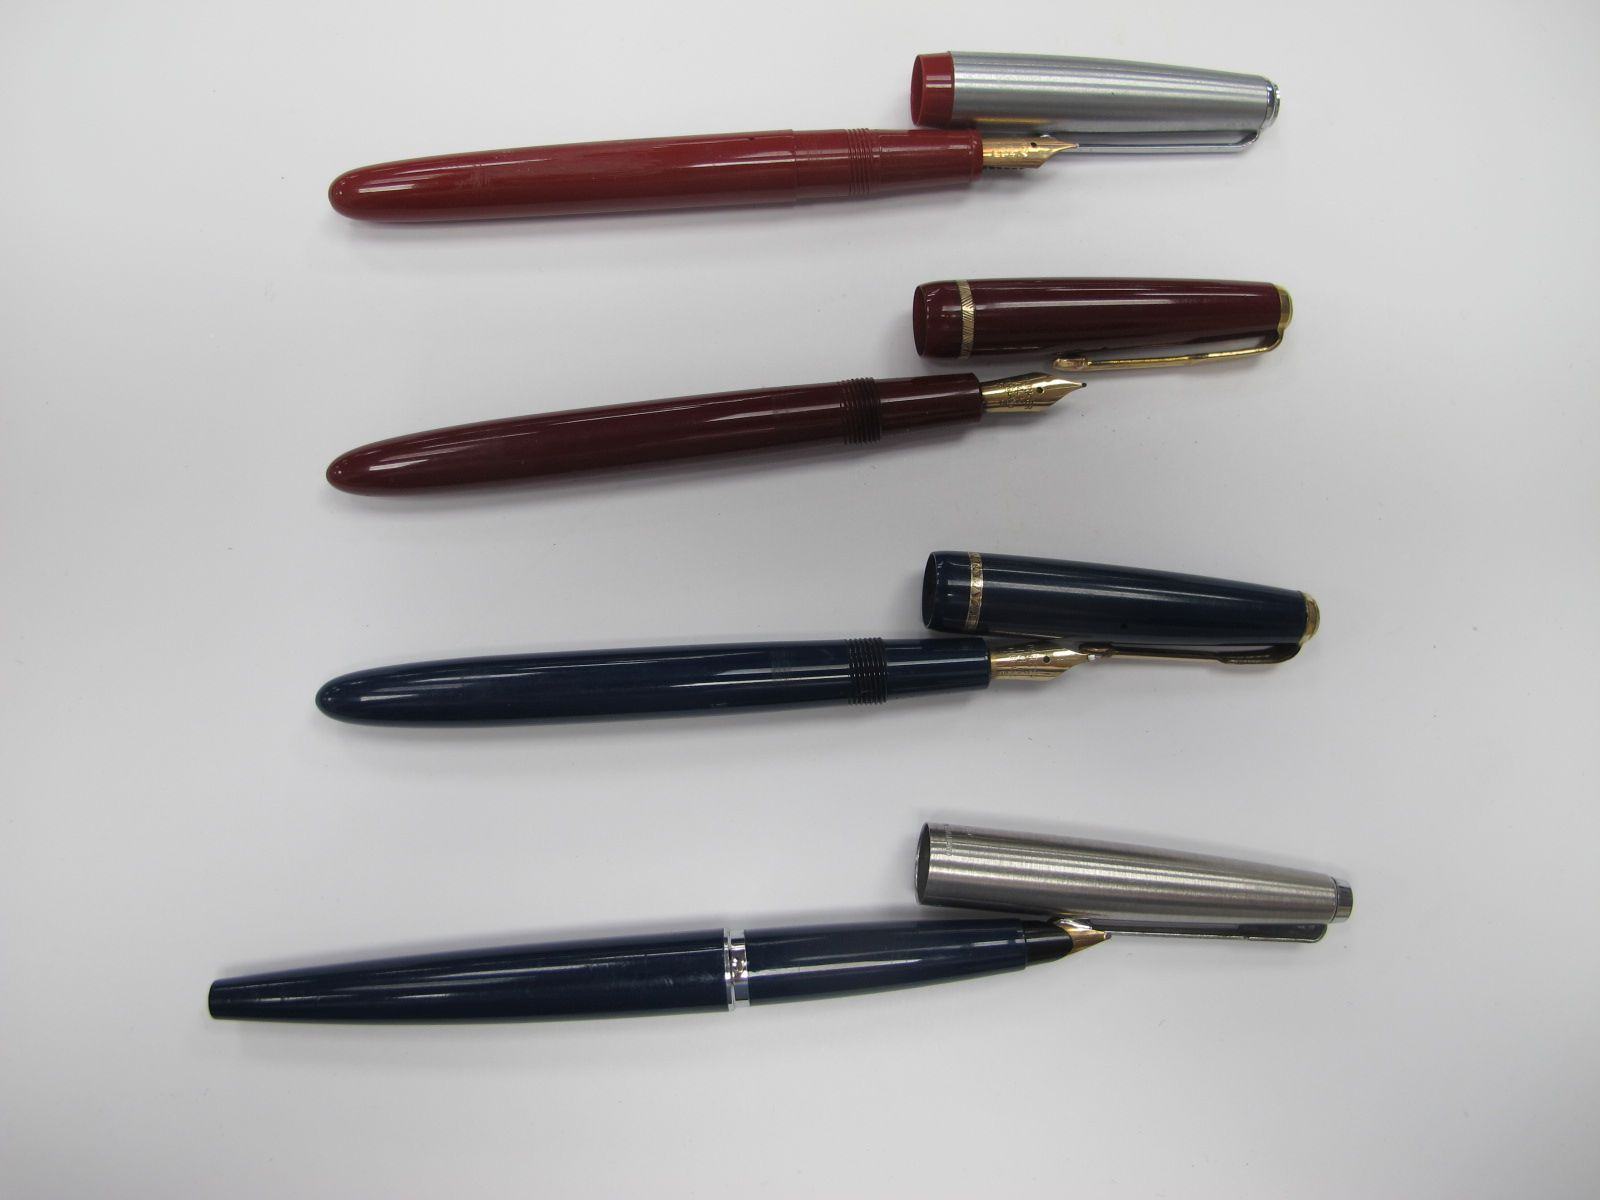 Fountain Pens - Parker Slimfold with Parker 14ct Nib, press bar to fill, blue in colour. Fountain